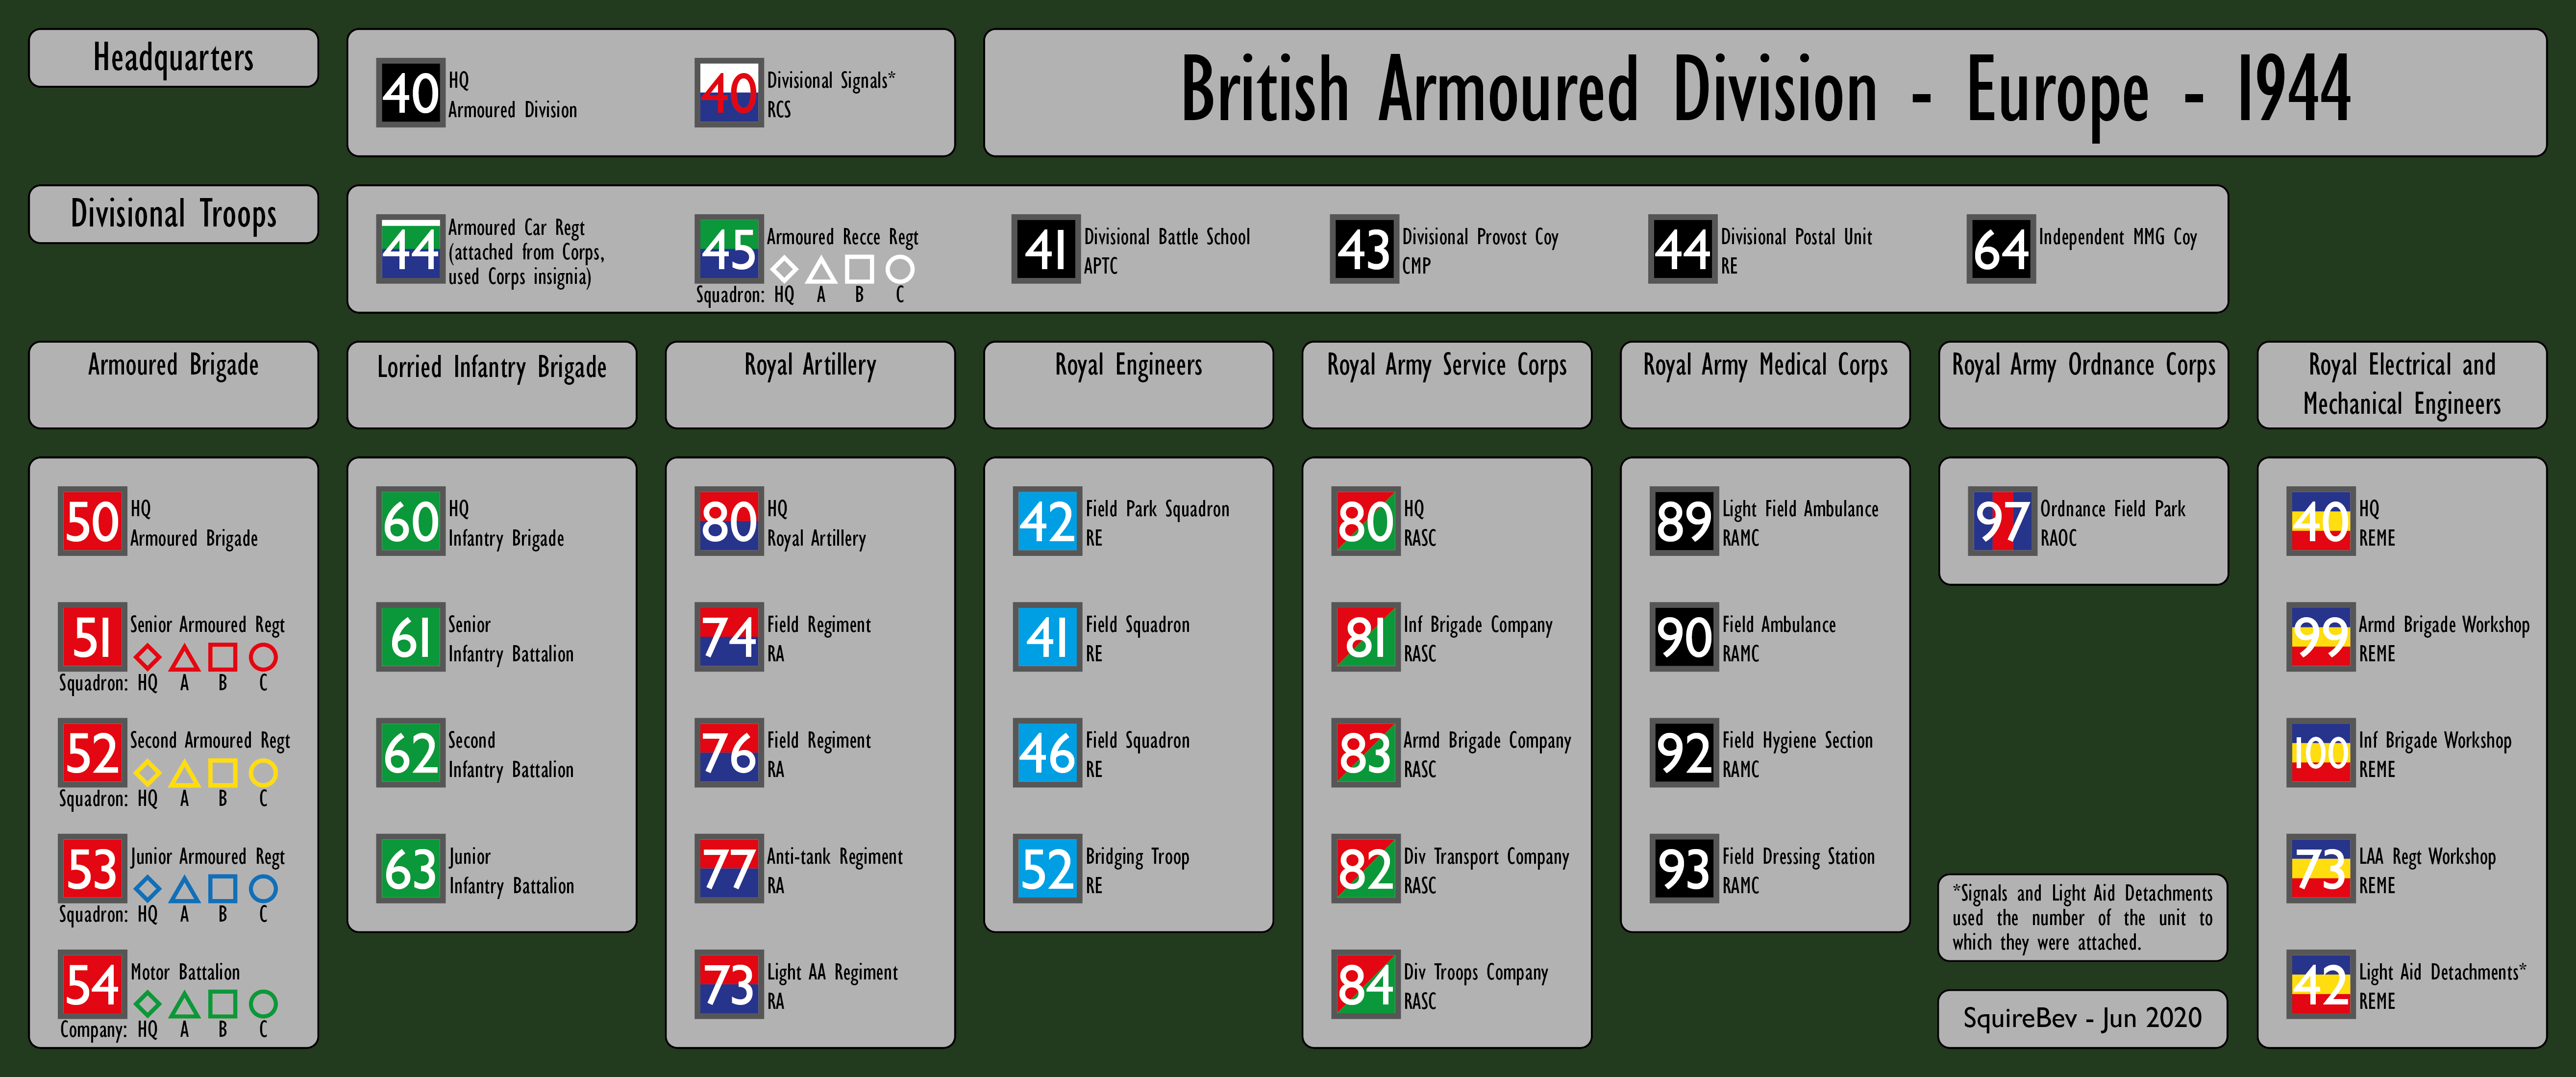 UK+-+Europe+-+Armoured+Division+-+1944-0